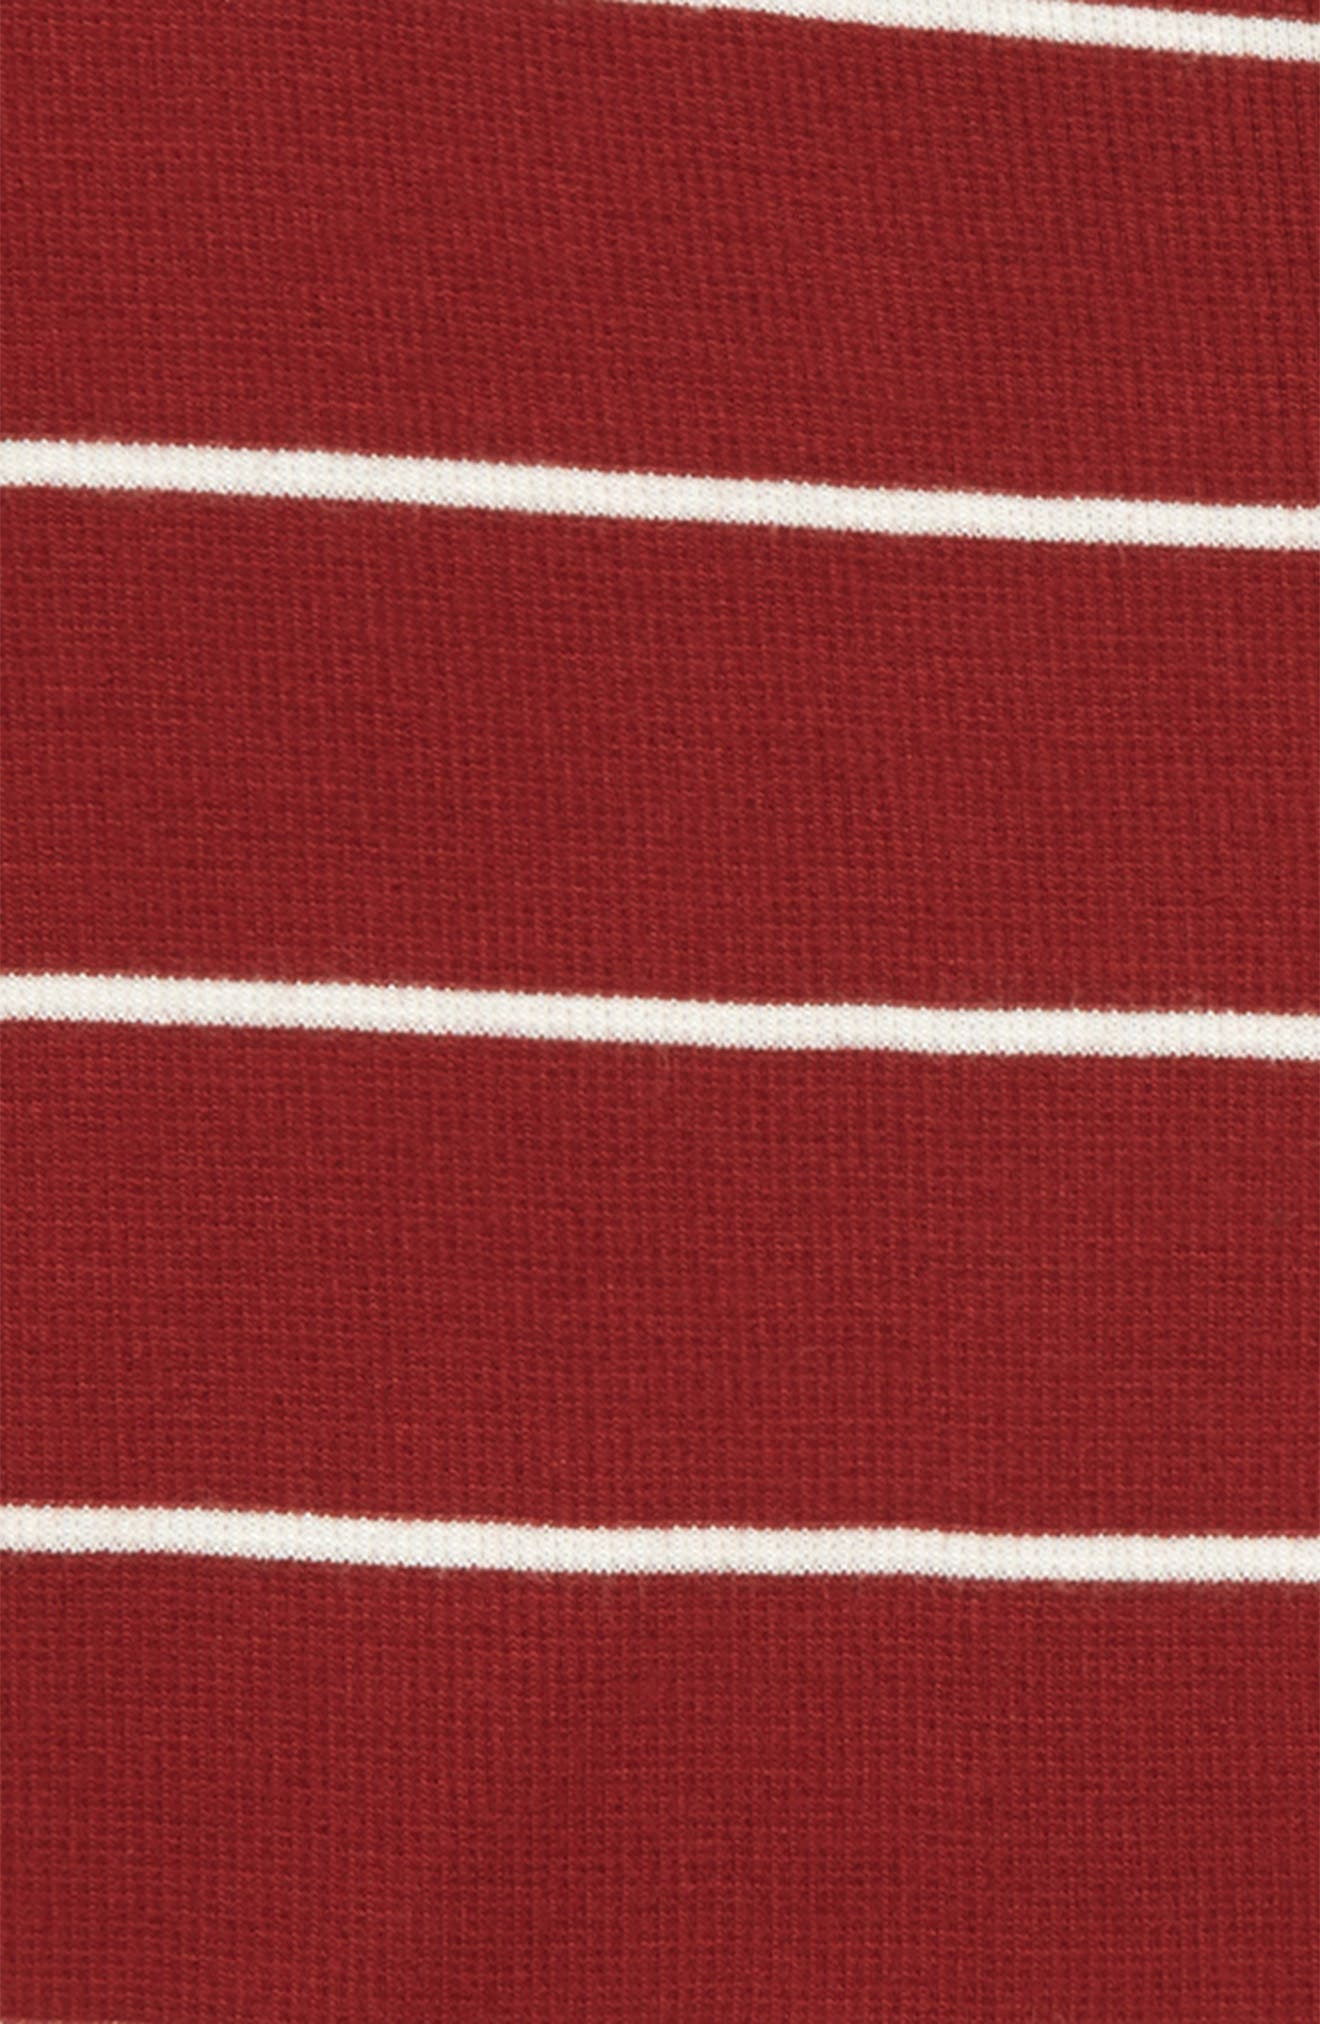 Stripe Knit Tee,                             Alternate thumbnail 2, color,                             Red Rosewood- Ivory Stripe